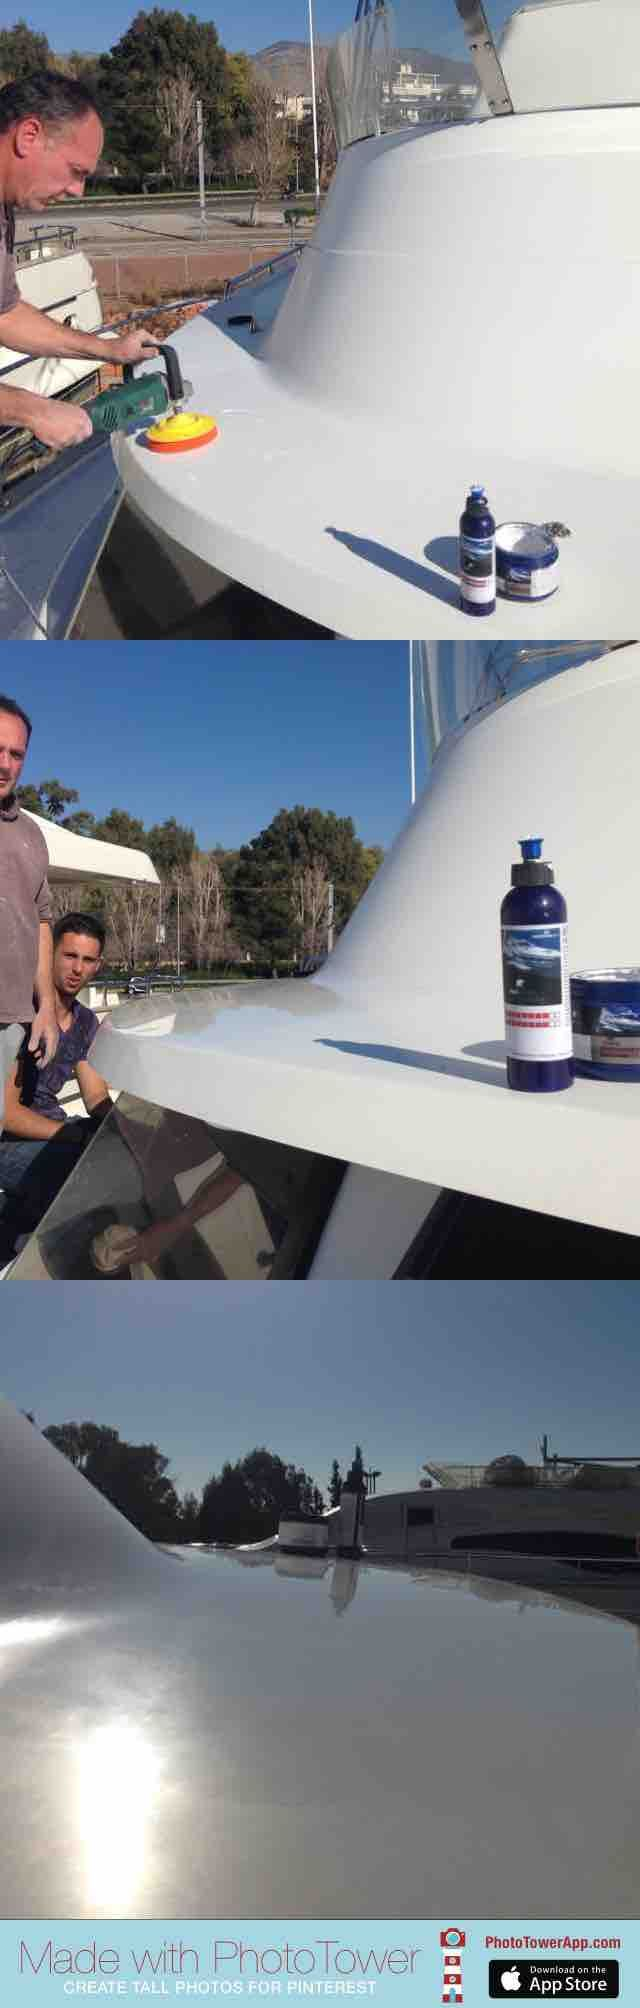 polishing a boat with faded gelcoat. Using PAI BOAT polishing pastes we achieved high glossiness